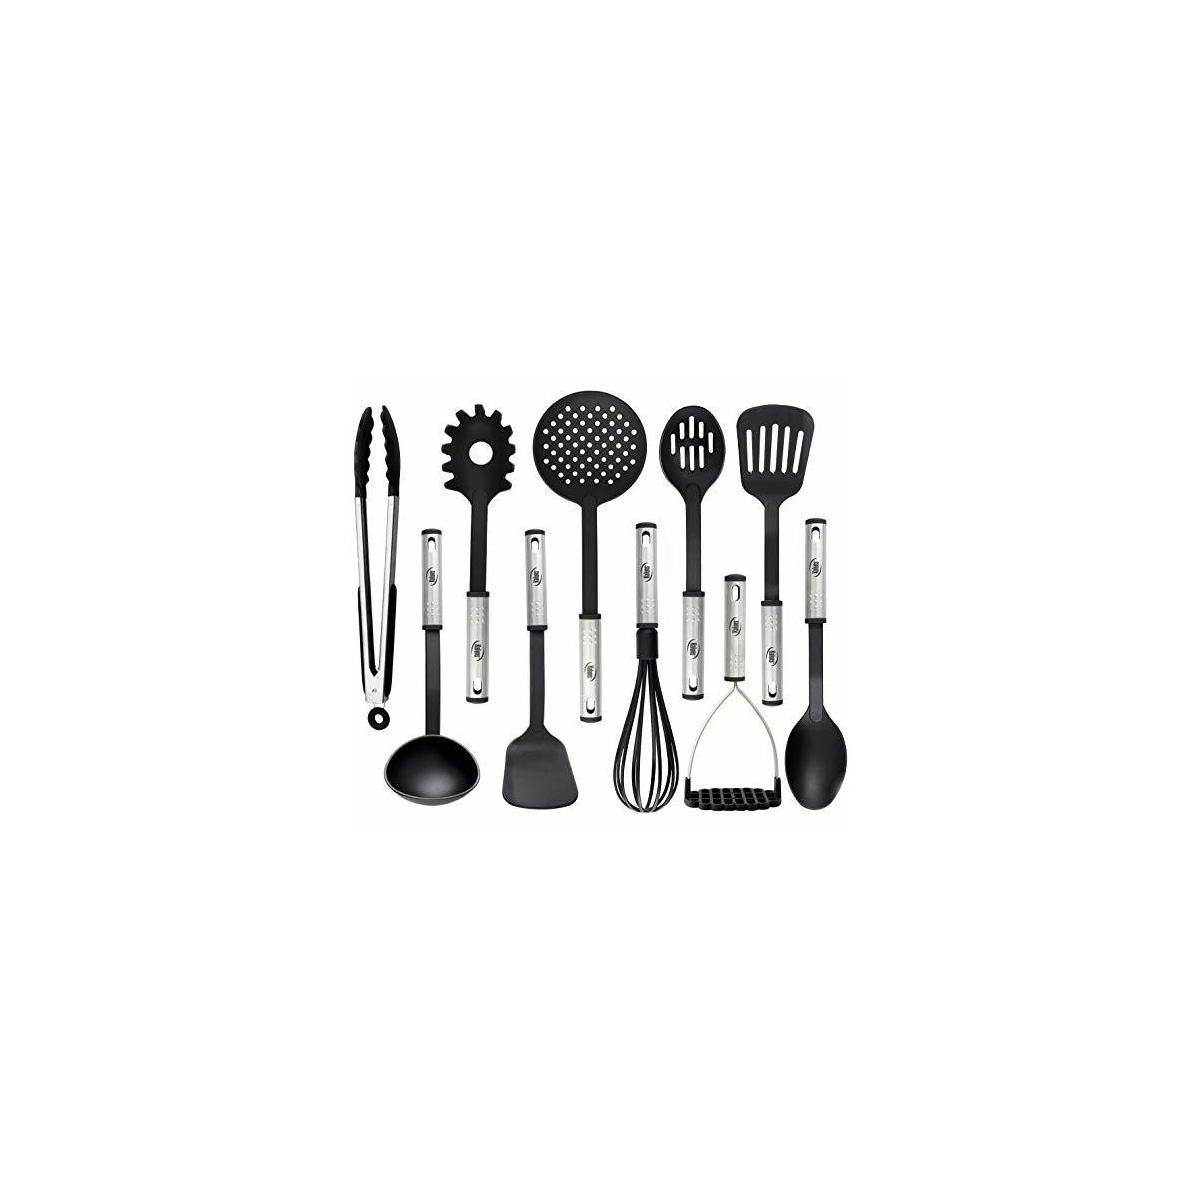 Cooking Utensils, 10 Nylon Stainless Steel Kitchen Supplies Non Stick and Heat Resistant Cookware set New Chef's Gadget Tools Collection Great Silicone Spatula Best Holiday Gift Idea. (Black)